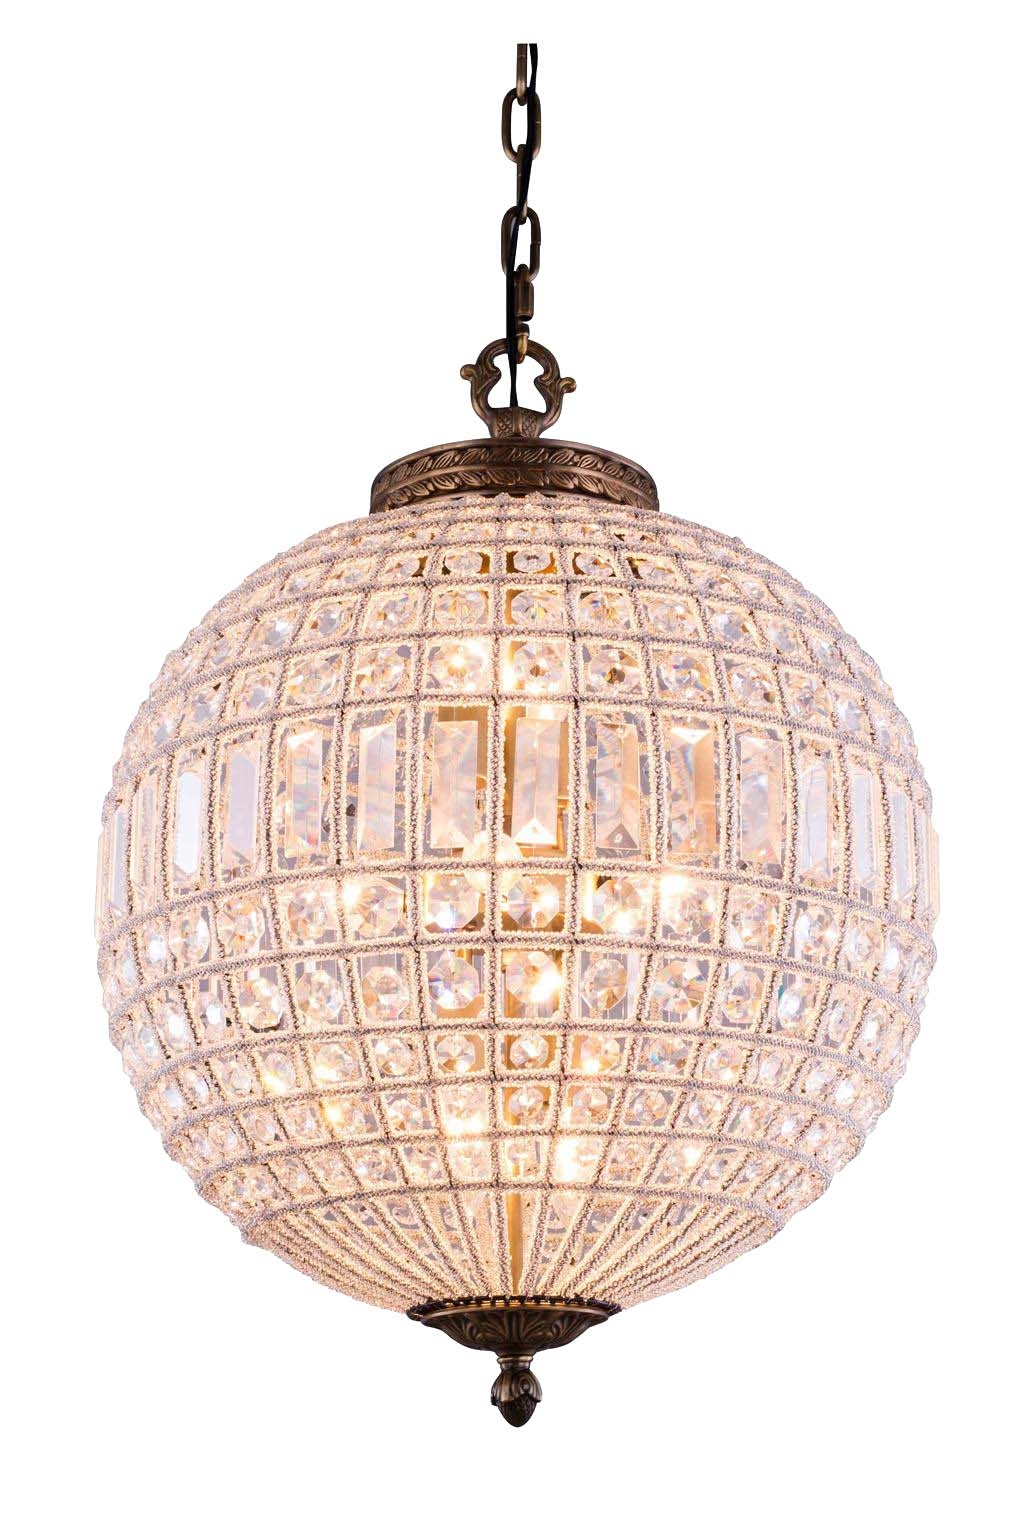 Lucienne 3 Light Crystal Pendant Chandelier In French Gold For 3 Light Crystal Chandeliers (Image 14 of 25)